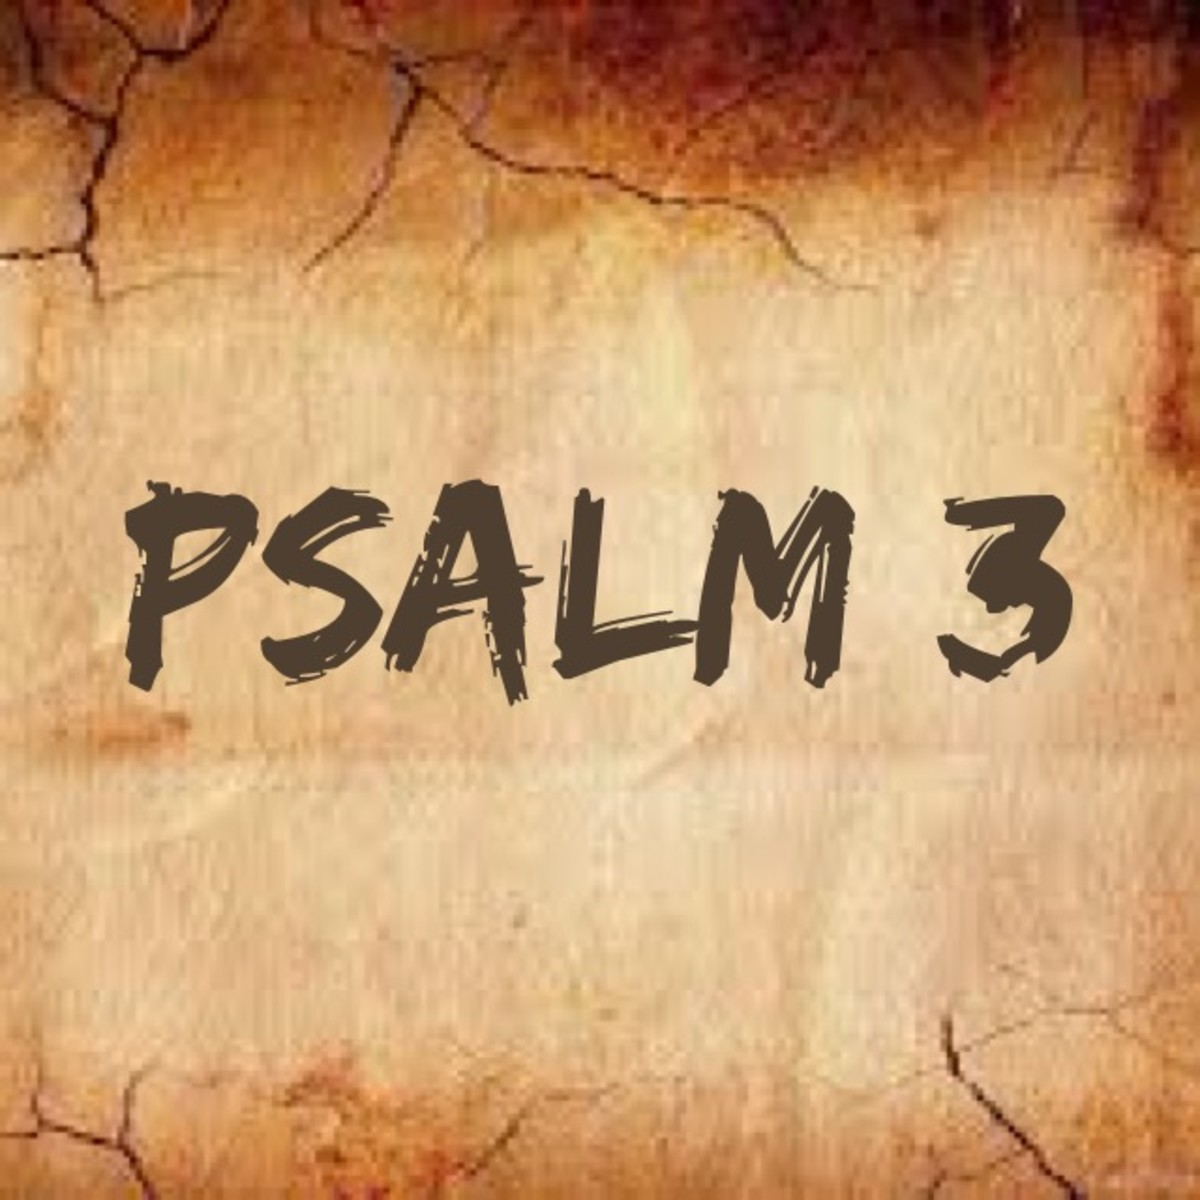 Psalm 3: Explained in Detail